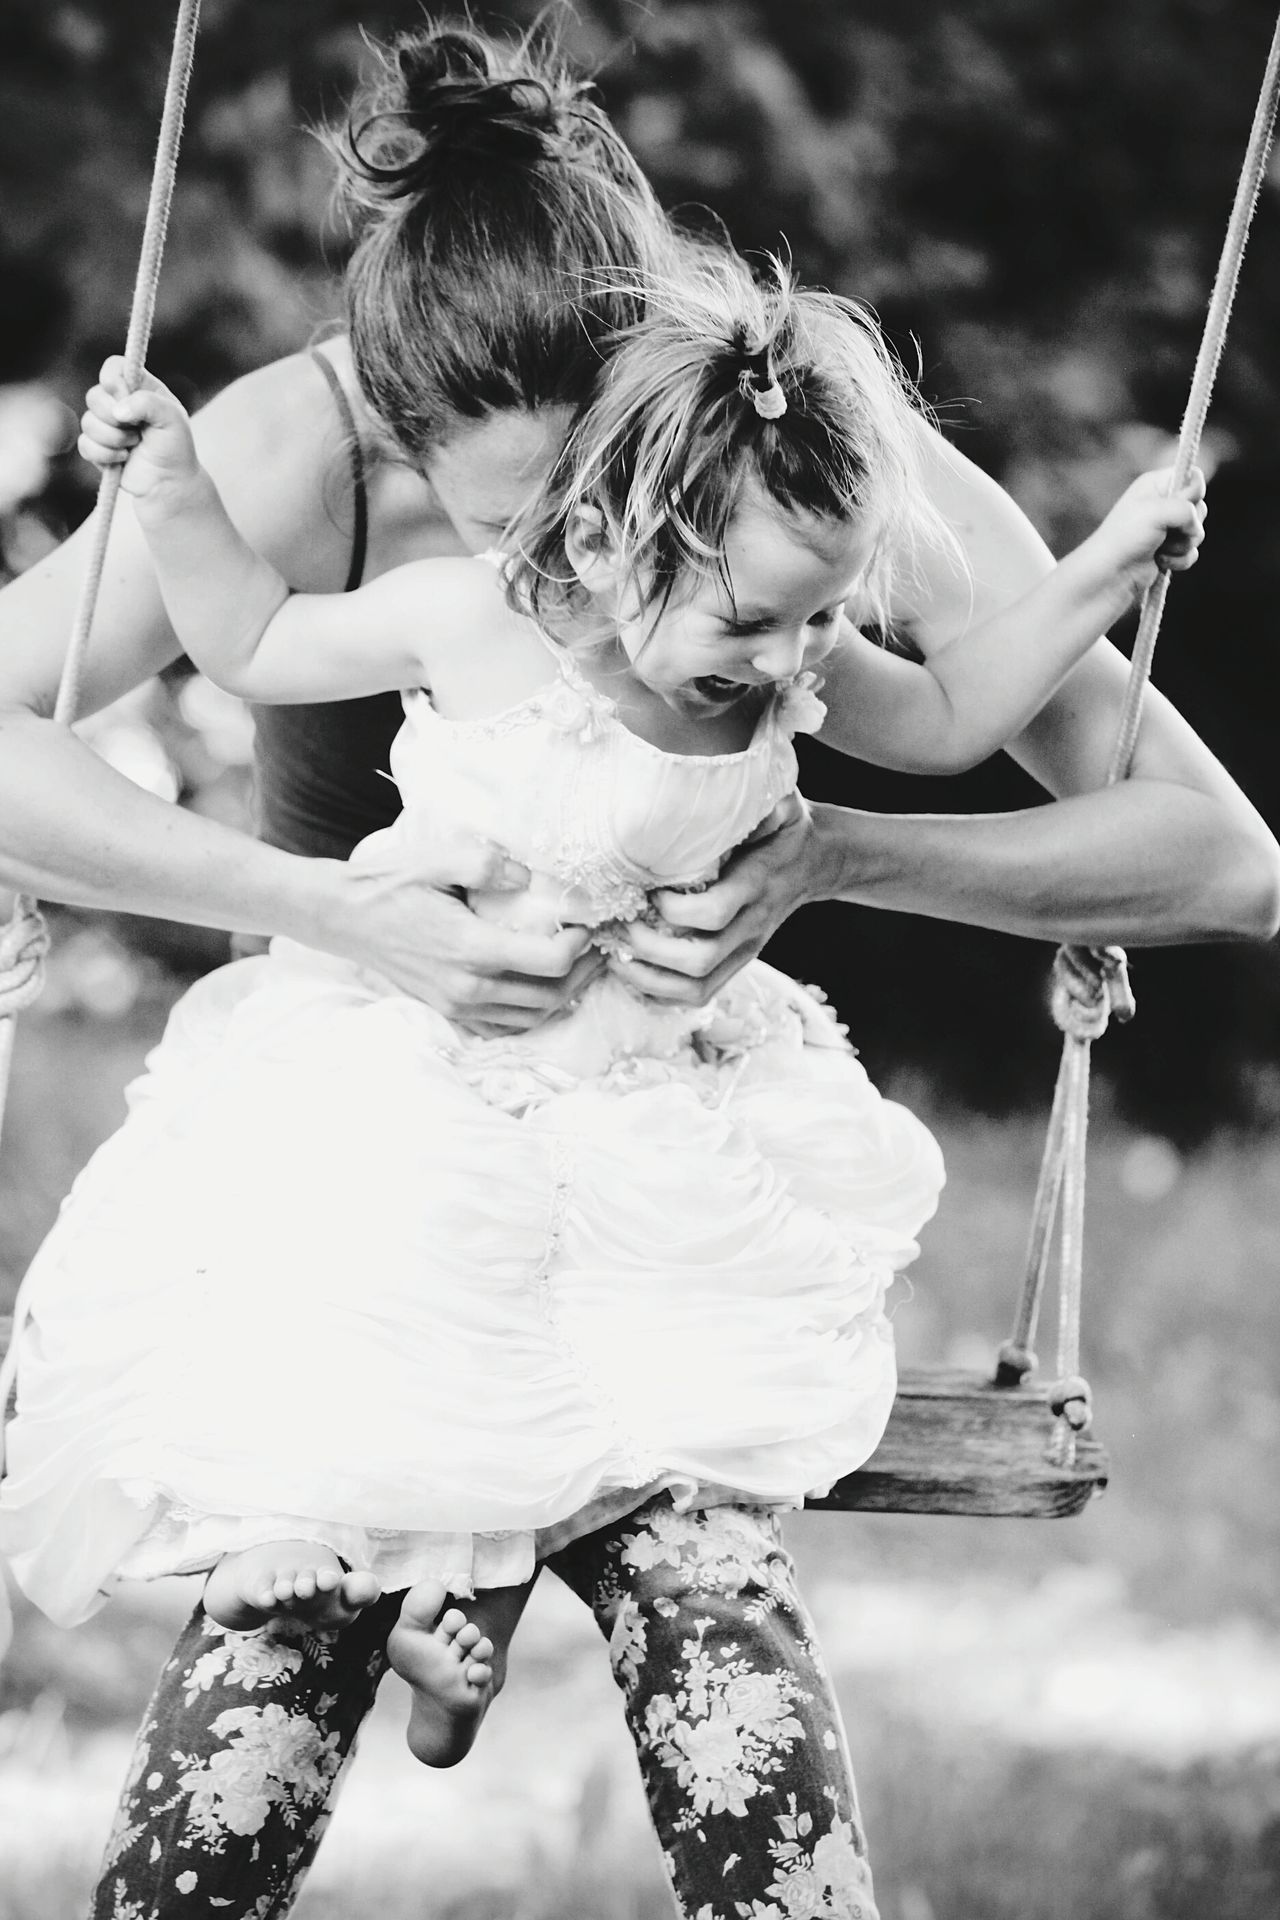 Mother Mother & Daughter Mother And Child Motherhood Two People Smiling Fun Cheerful Togetherness Bonding Leisure Activity Enjoyment Swing People Playing Enjoying Life Family Black & White Black And White Blackandwhite Child Happiness EyeEmNewHere